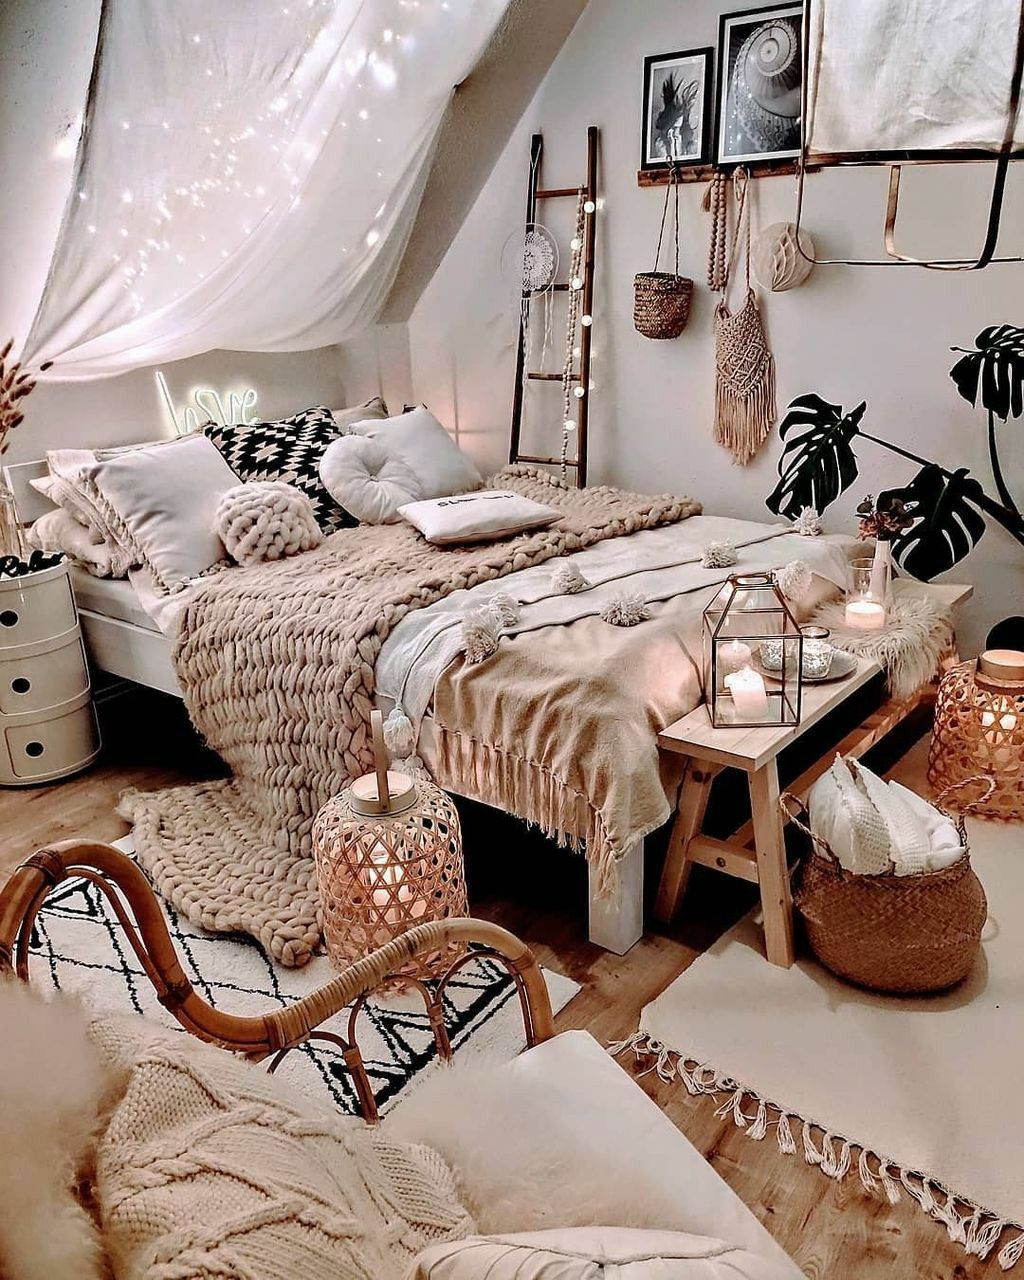 How To Decorate Your Bedroom In Bohemian Style Room Inspiration Bedroom Room Ideas Bedroom Bedroom Decor